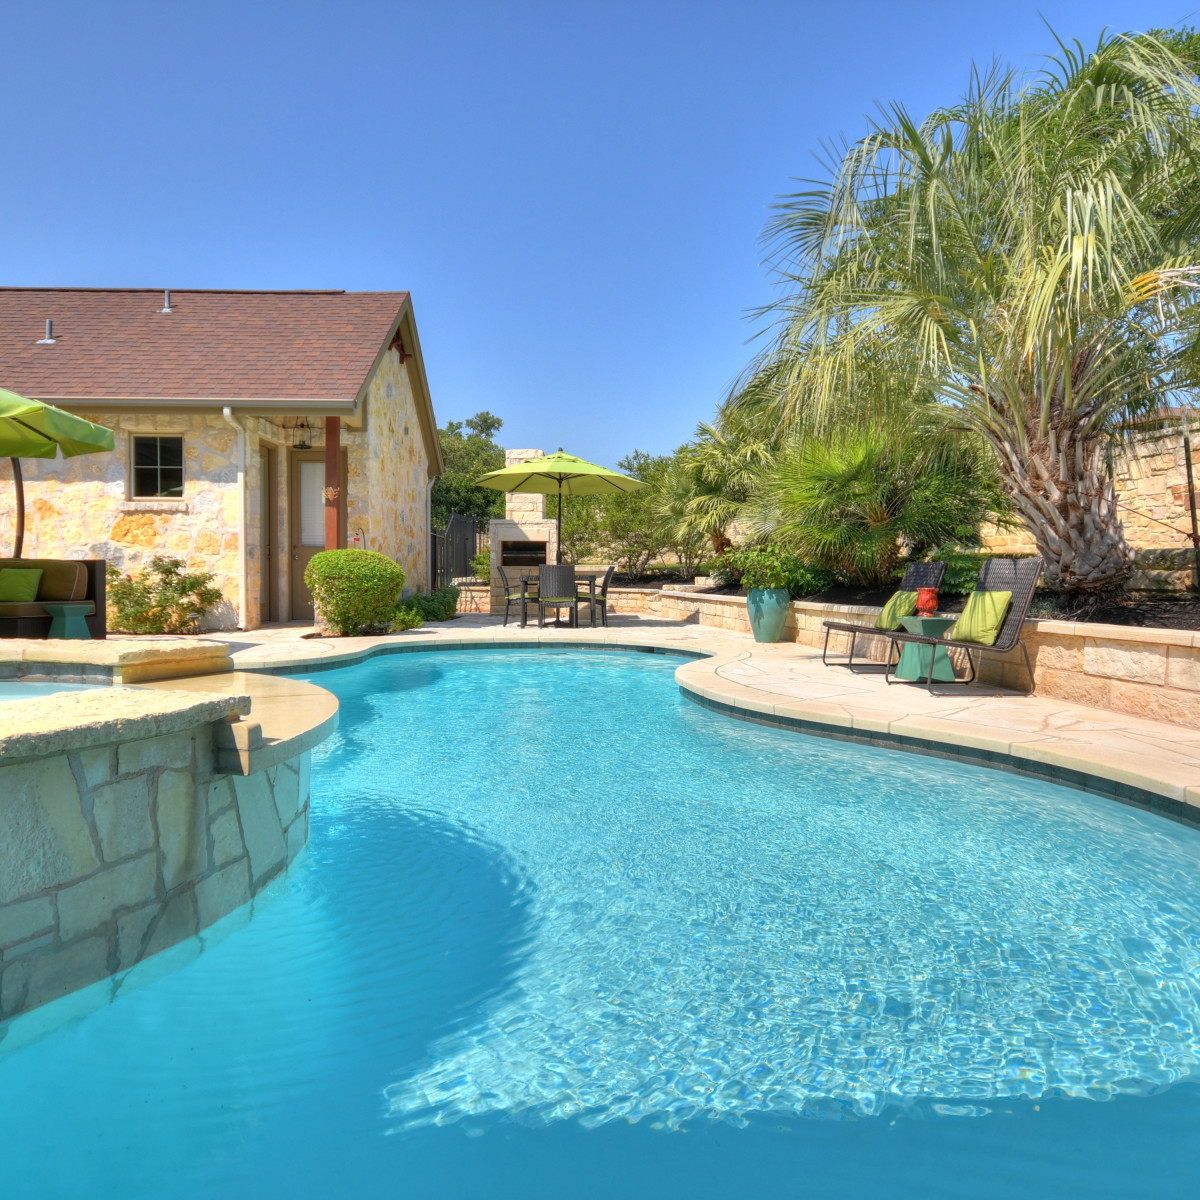 7200 Turnbuoy Austin house for sale pool